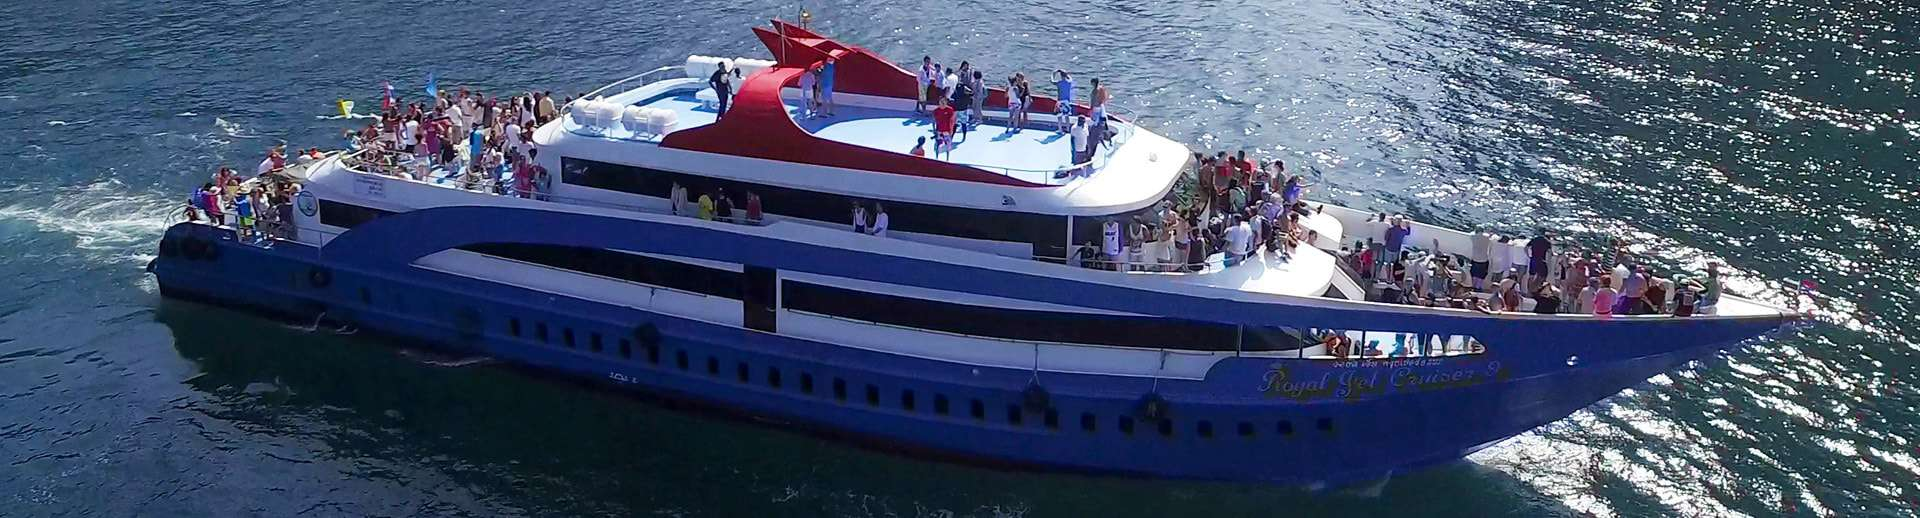 royal jet cruise phuket phi phi